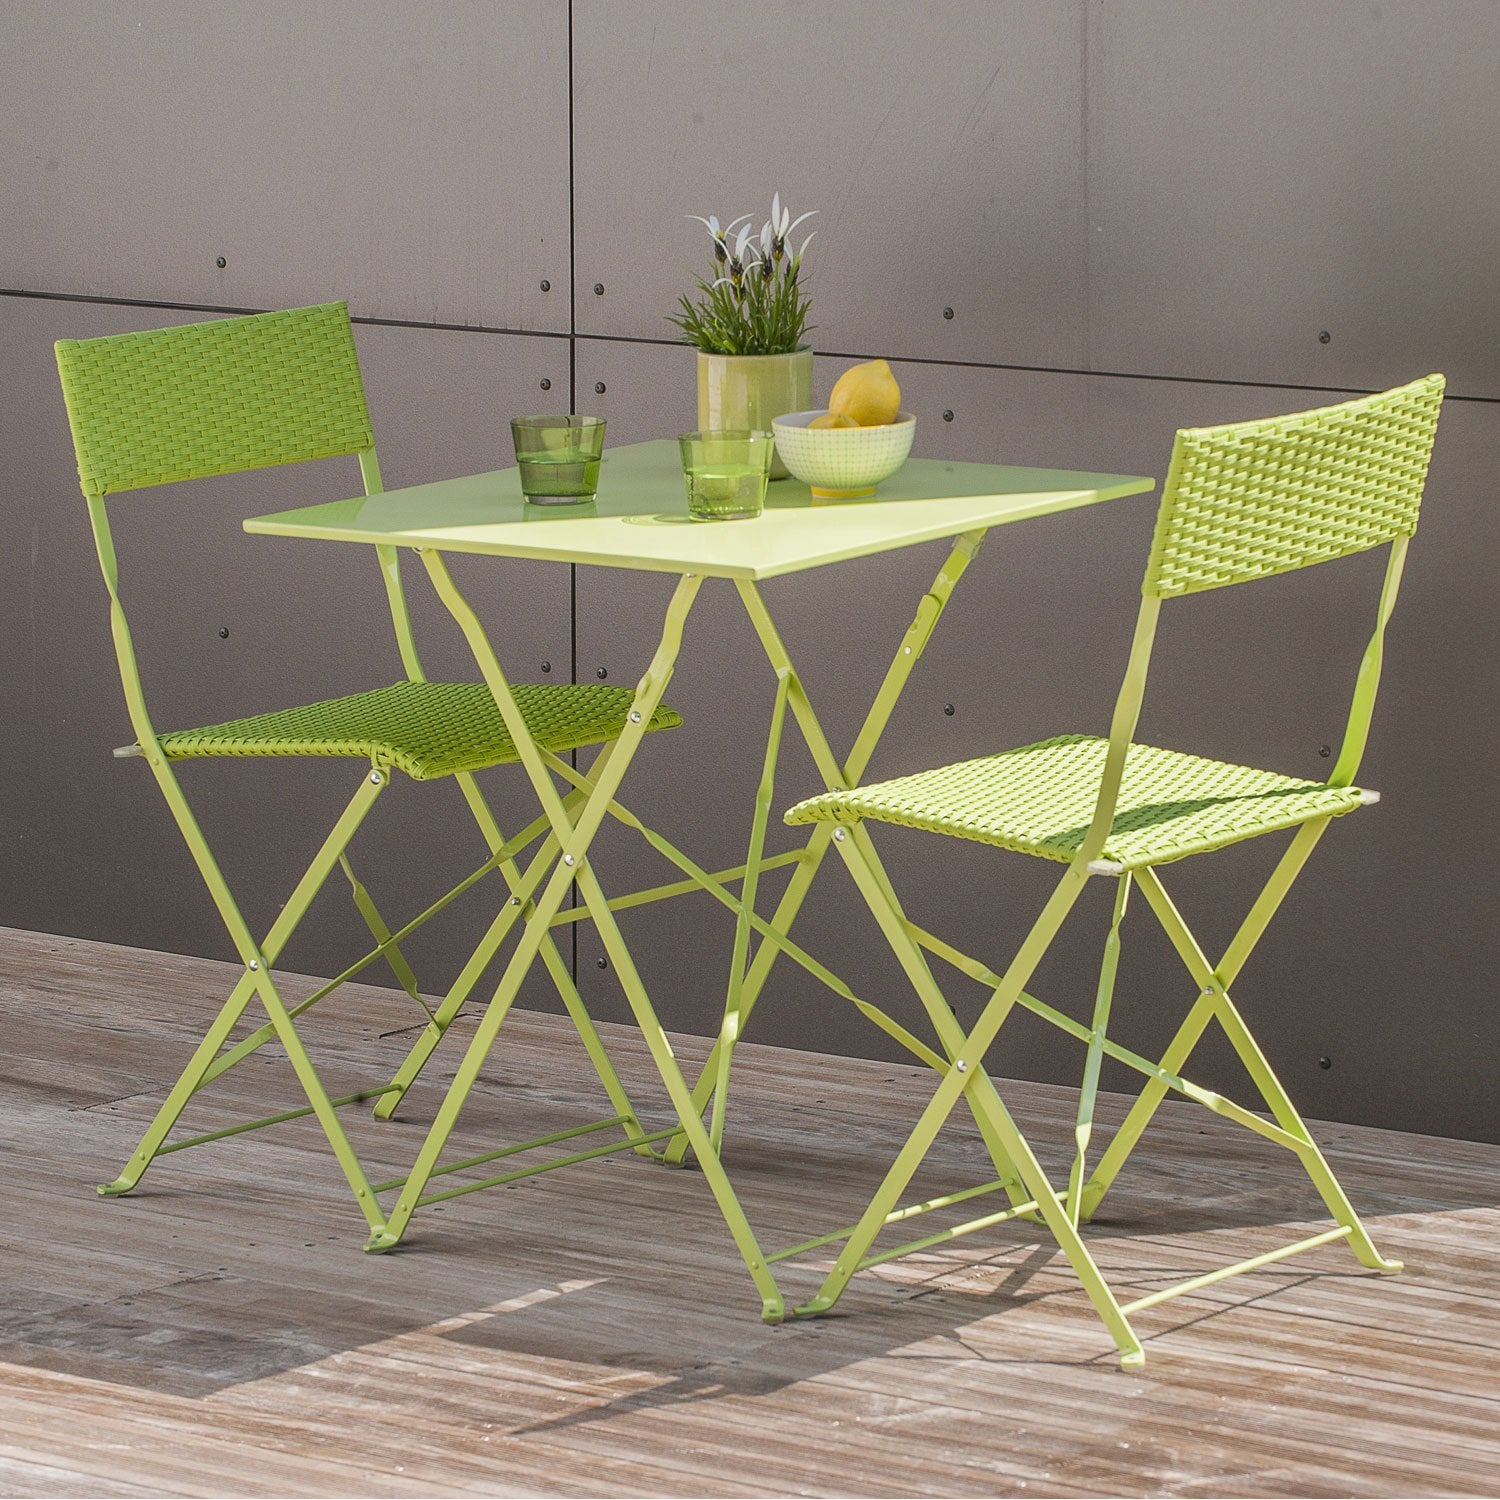 Salon de jardin mezzo acier vert 1 table gueridon 2 for Table exterieur 2 places